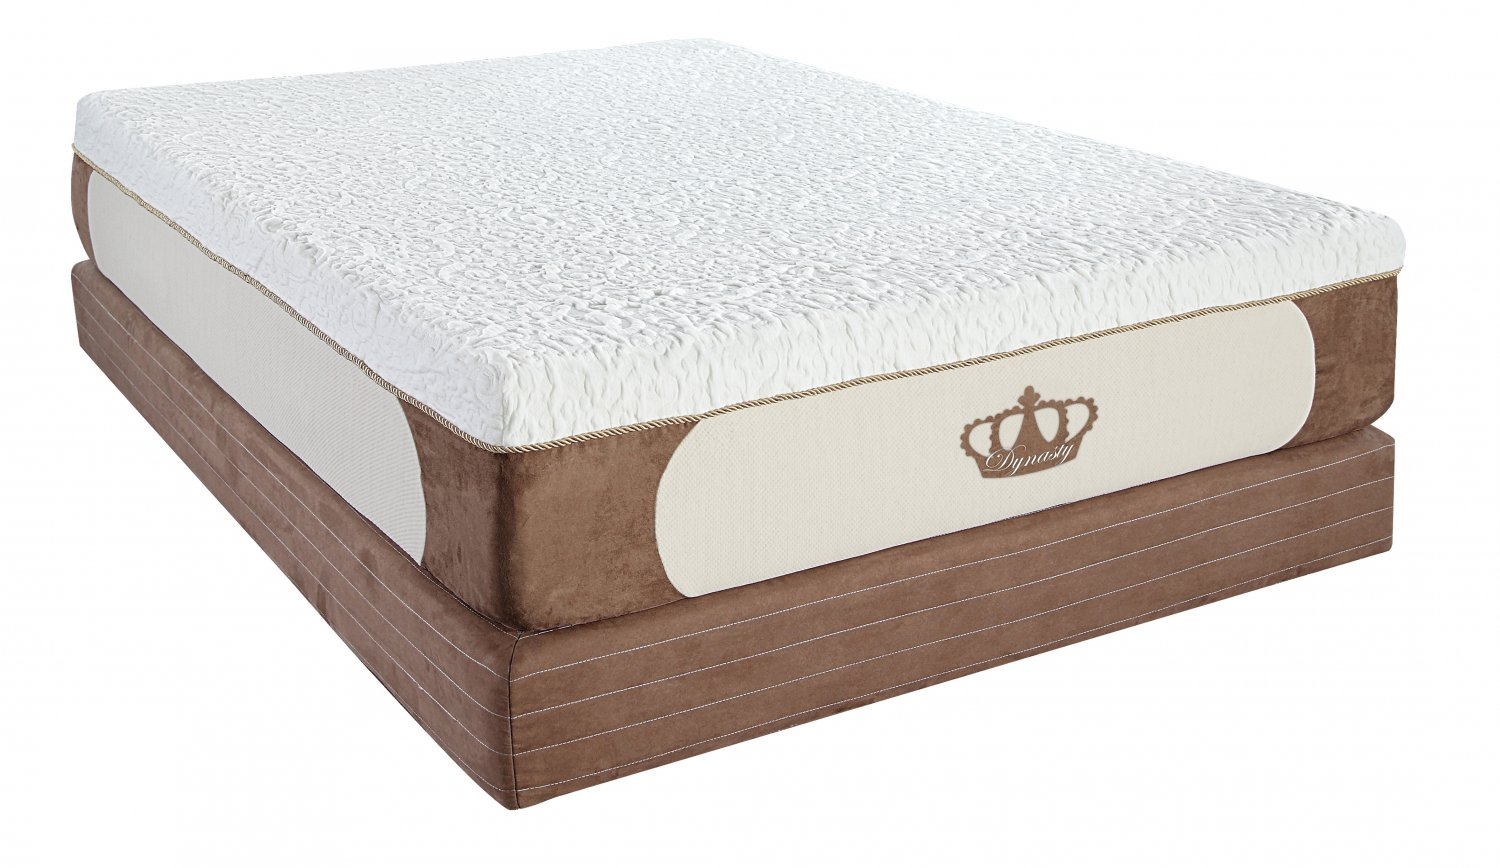 14 grand coolbreeze gel memory foam mattress cal king size Memory foam king size mattress